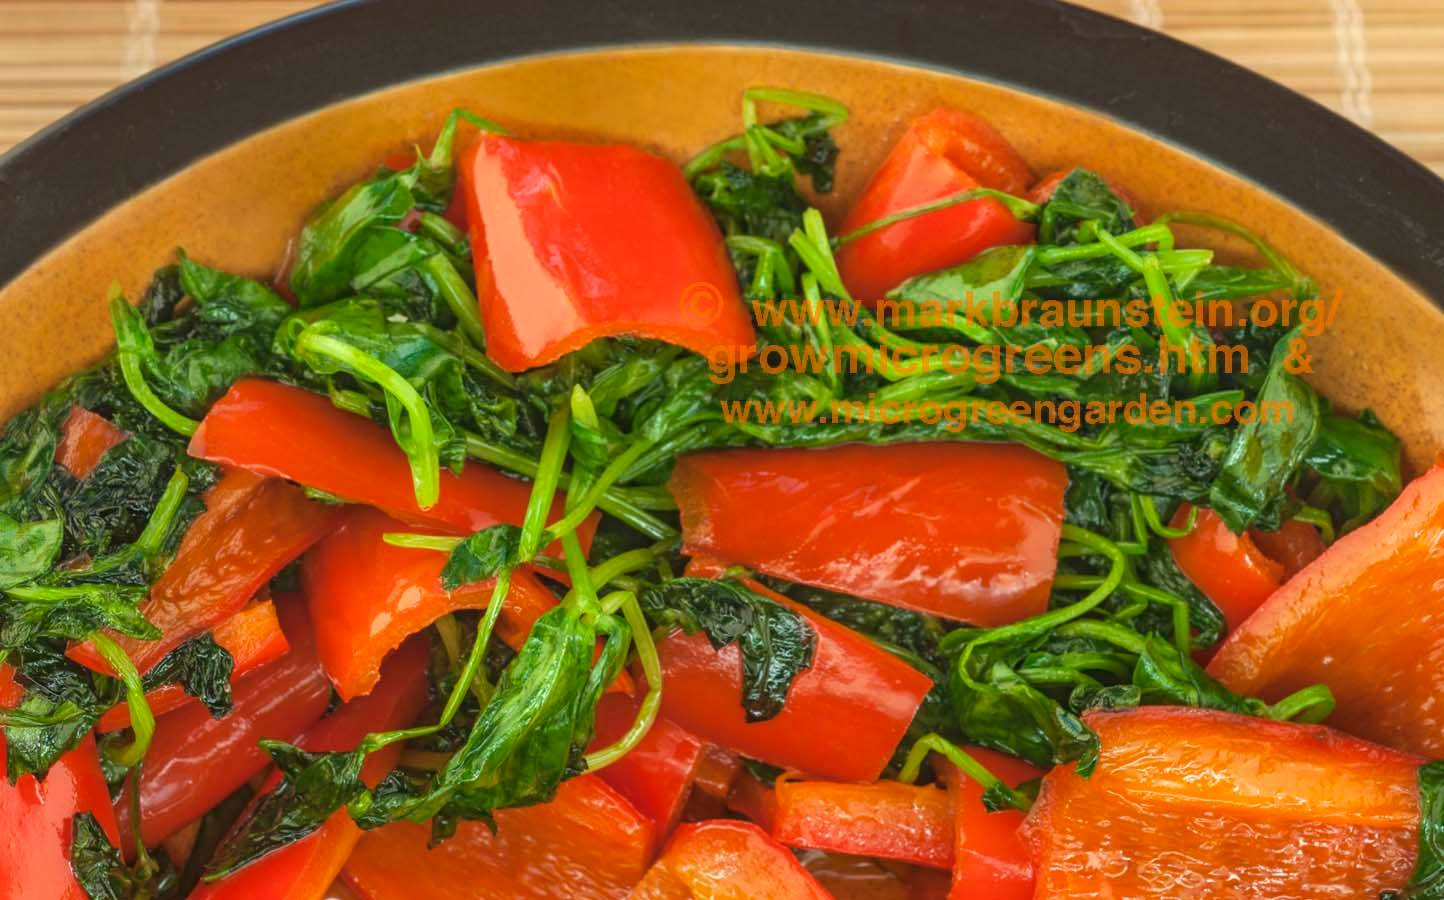 PEA shoots & red peppers - SAUTEED